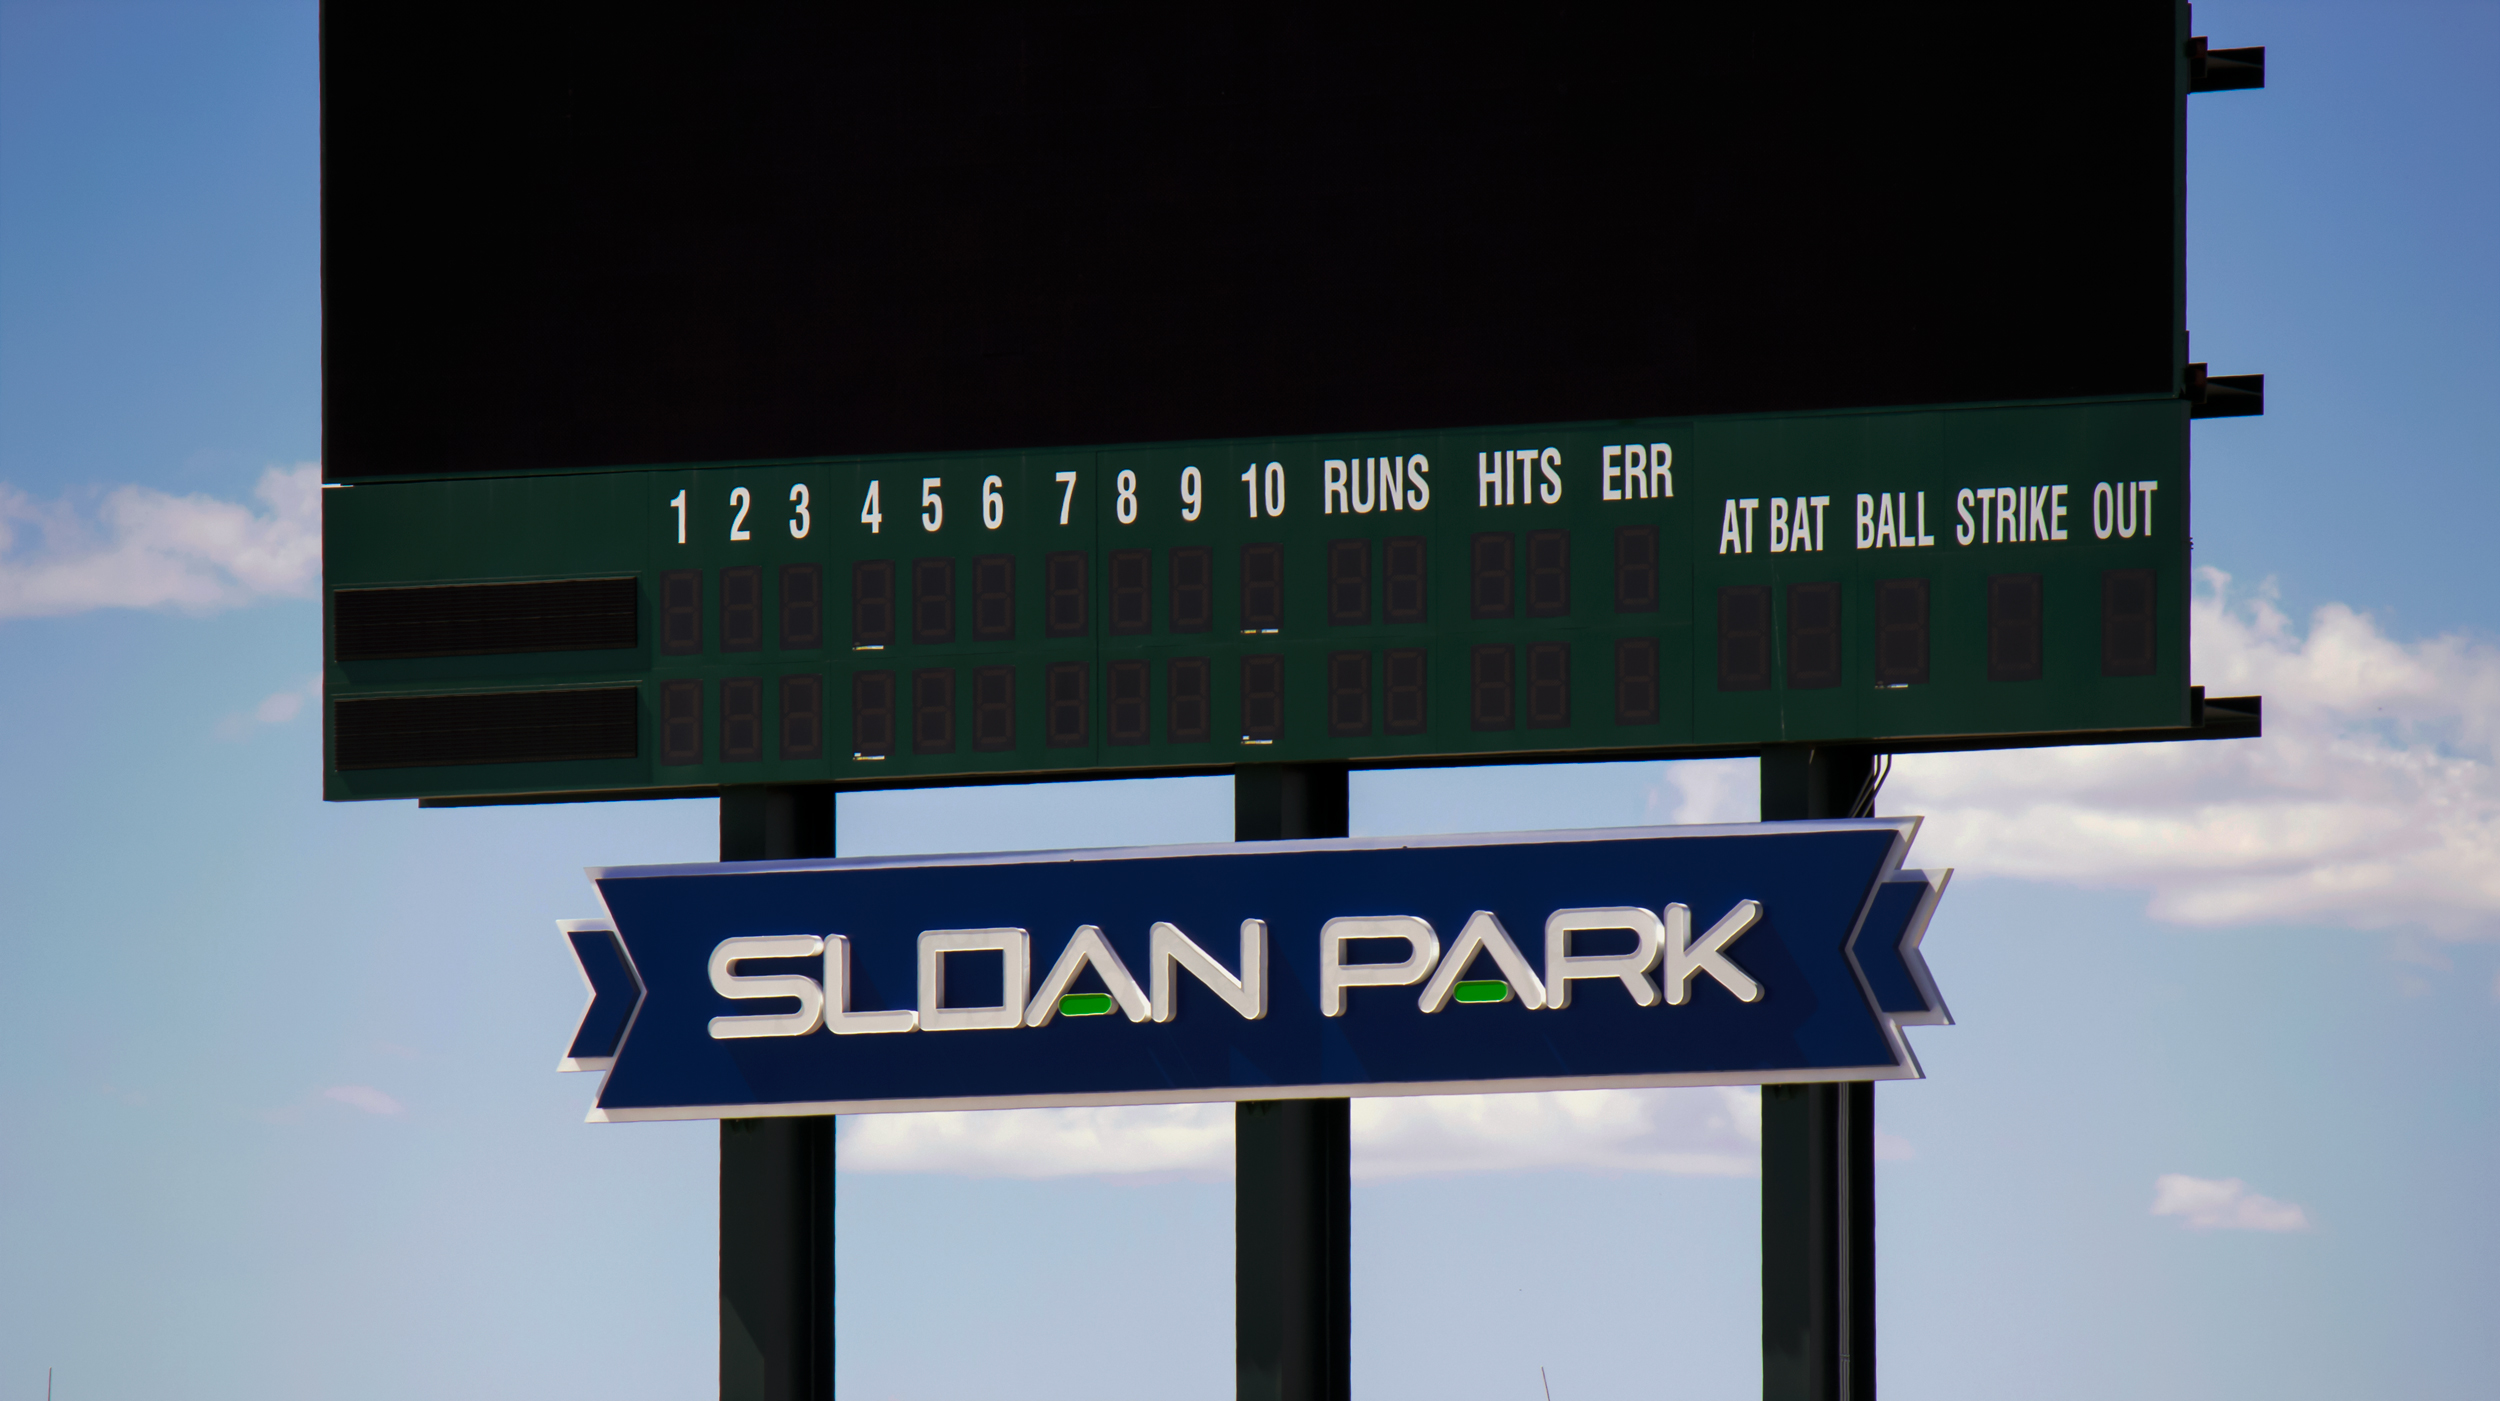 The double faced illuminated cabinet sign brands the spring training field scoreboard Sloan Park.